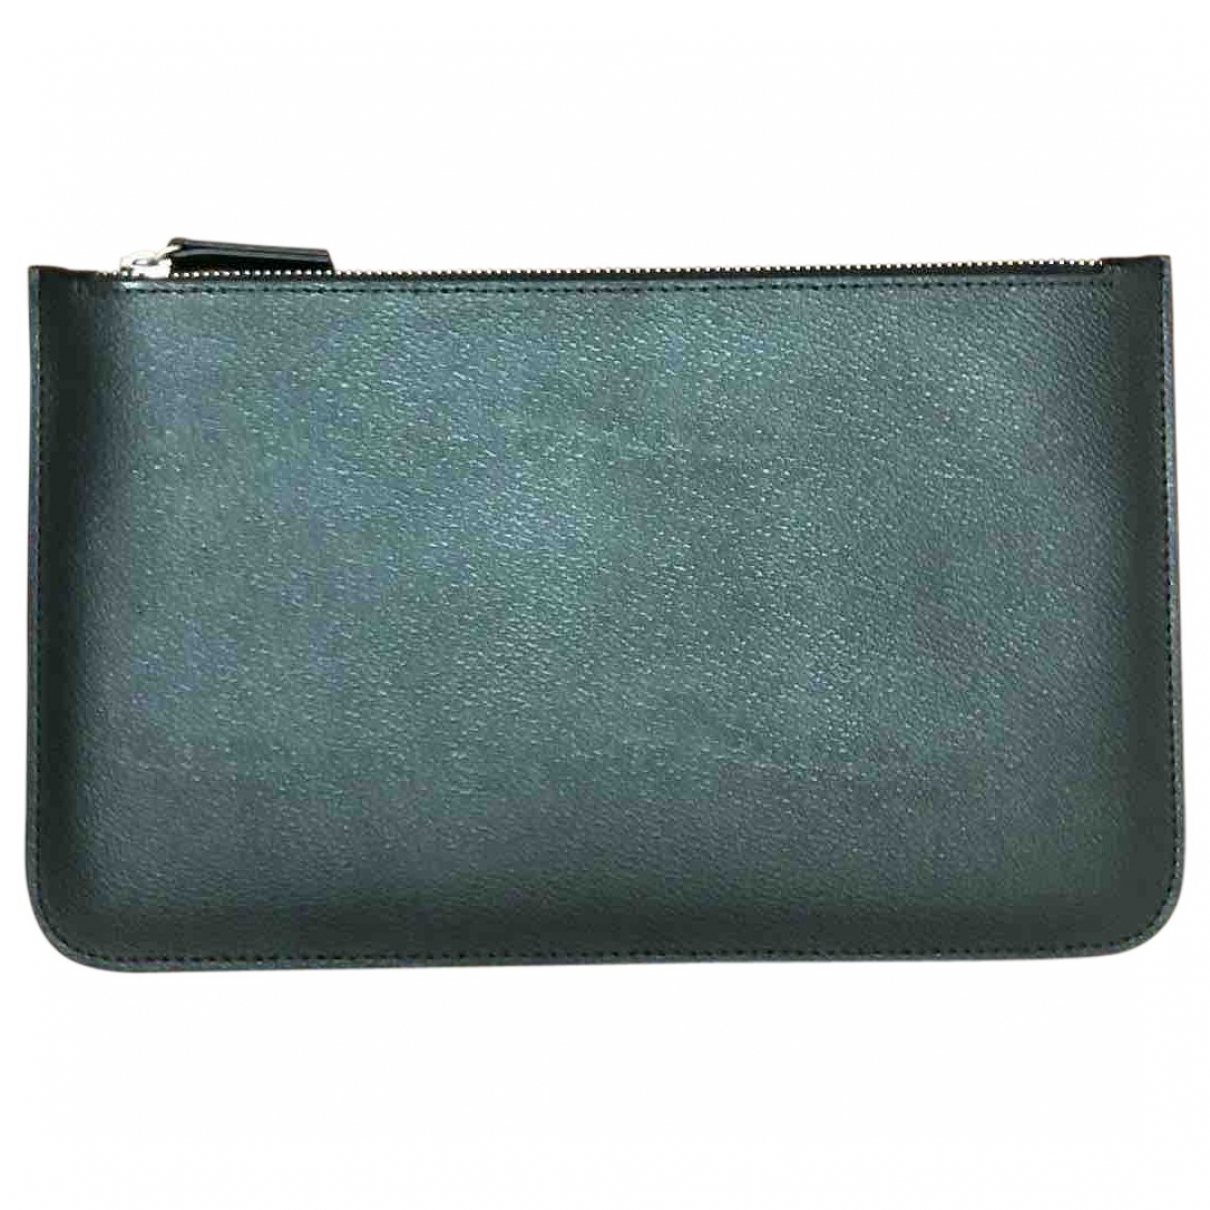 Dsquared2 \N Black Leather Clutch bag for Women \N